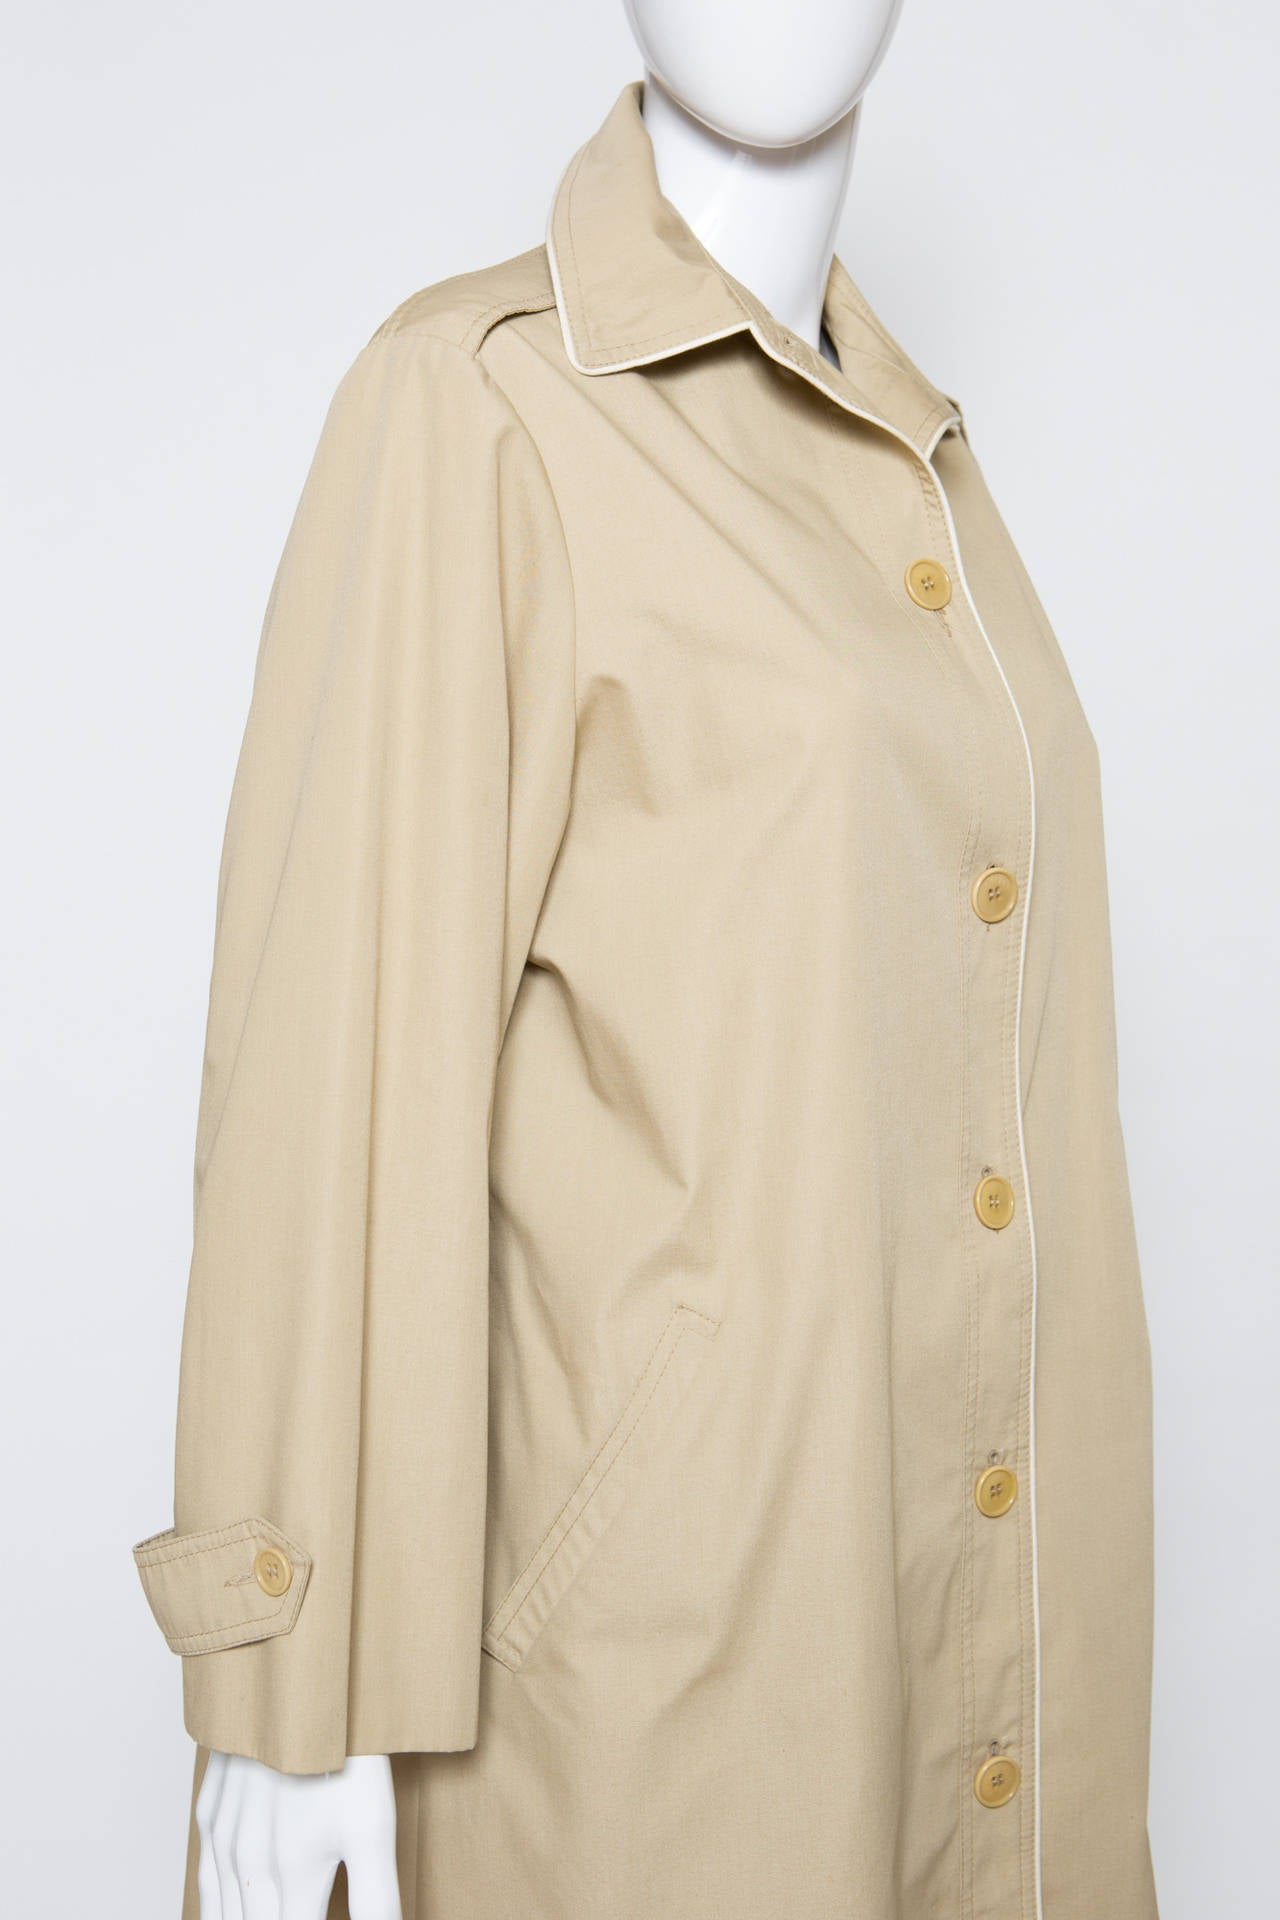 1975s Celine Camel Trench-Coat 4